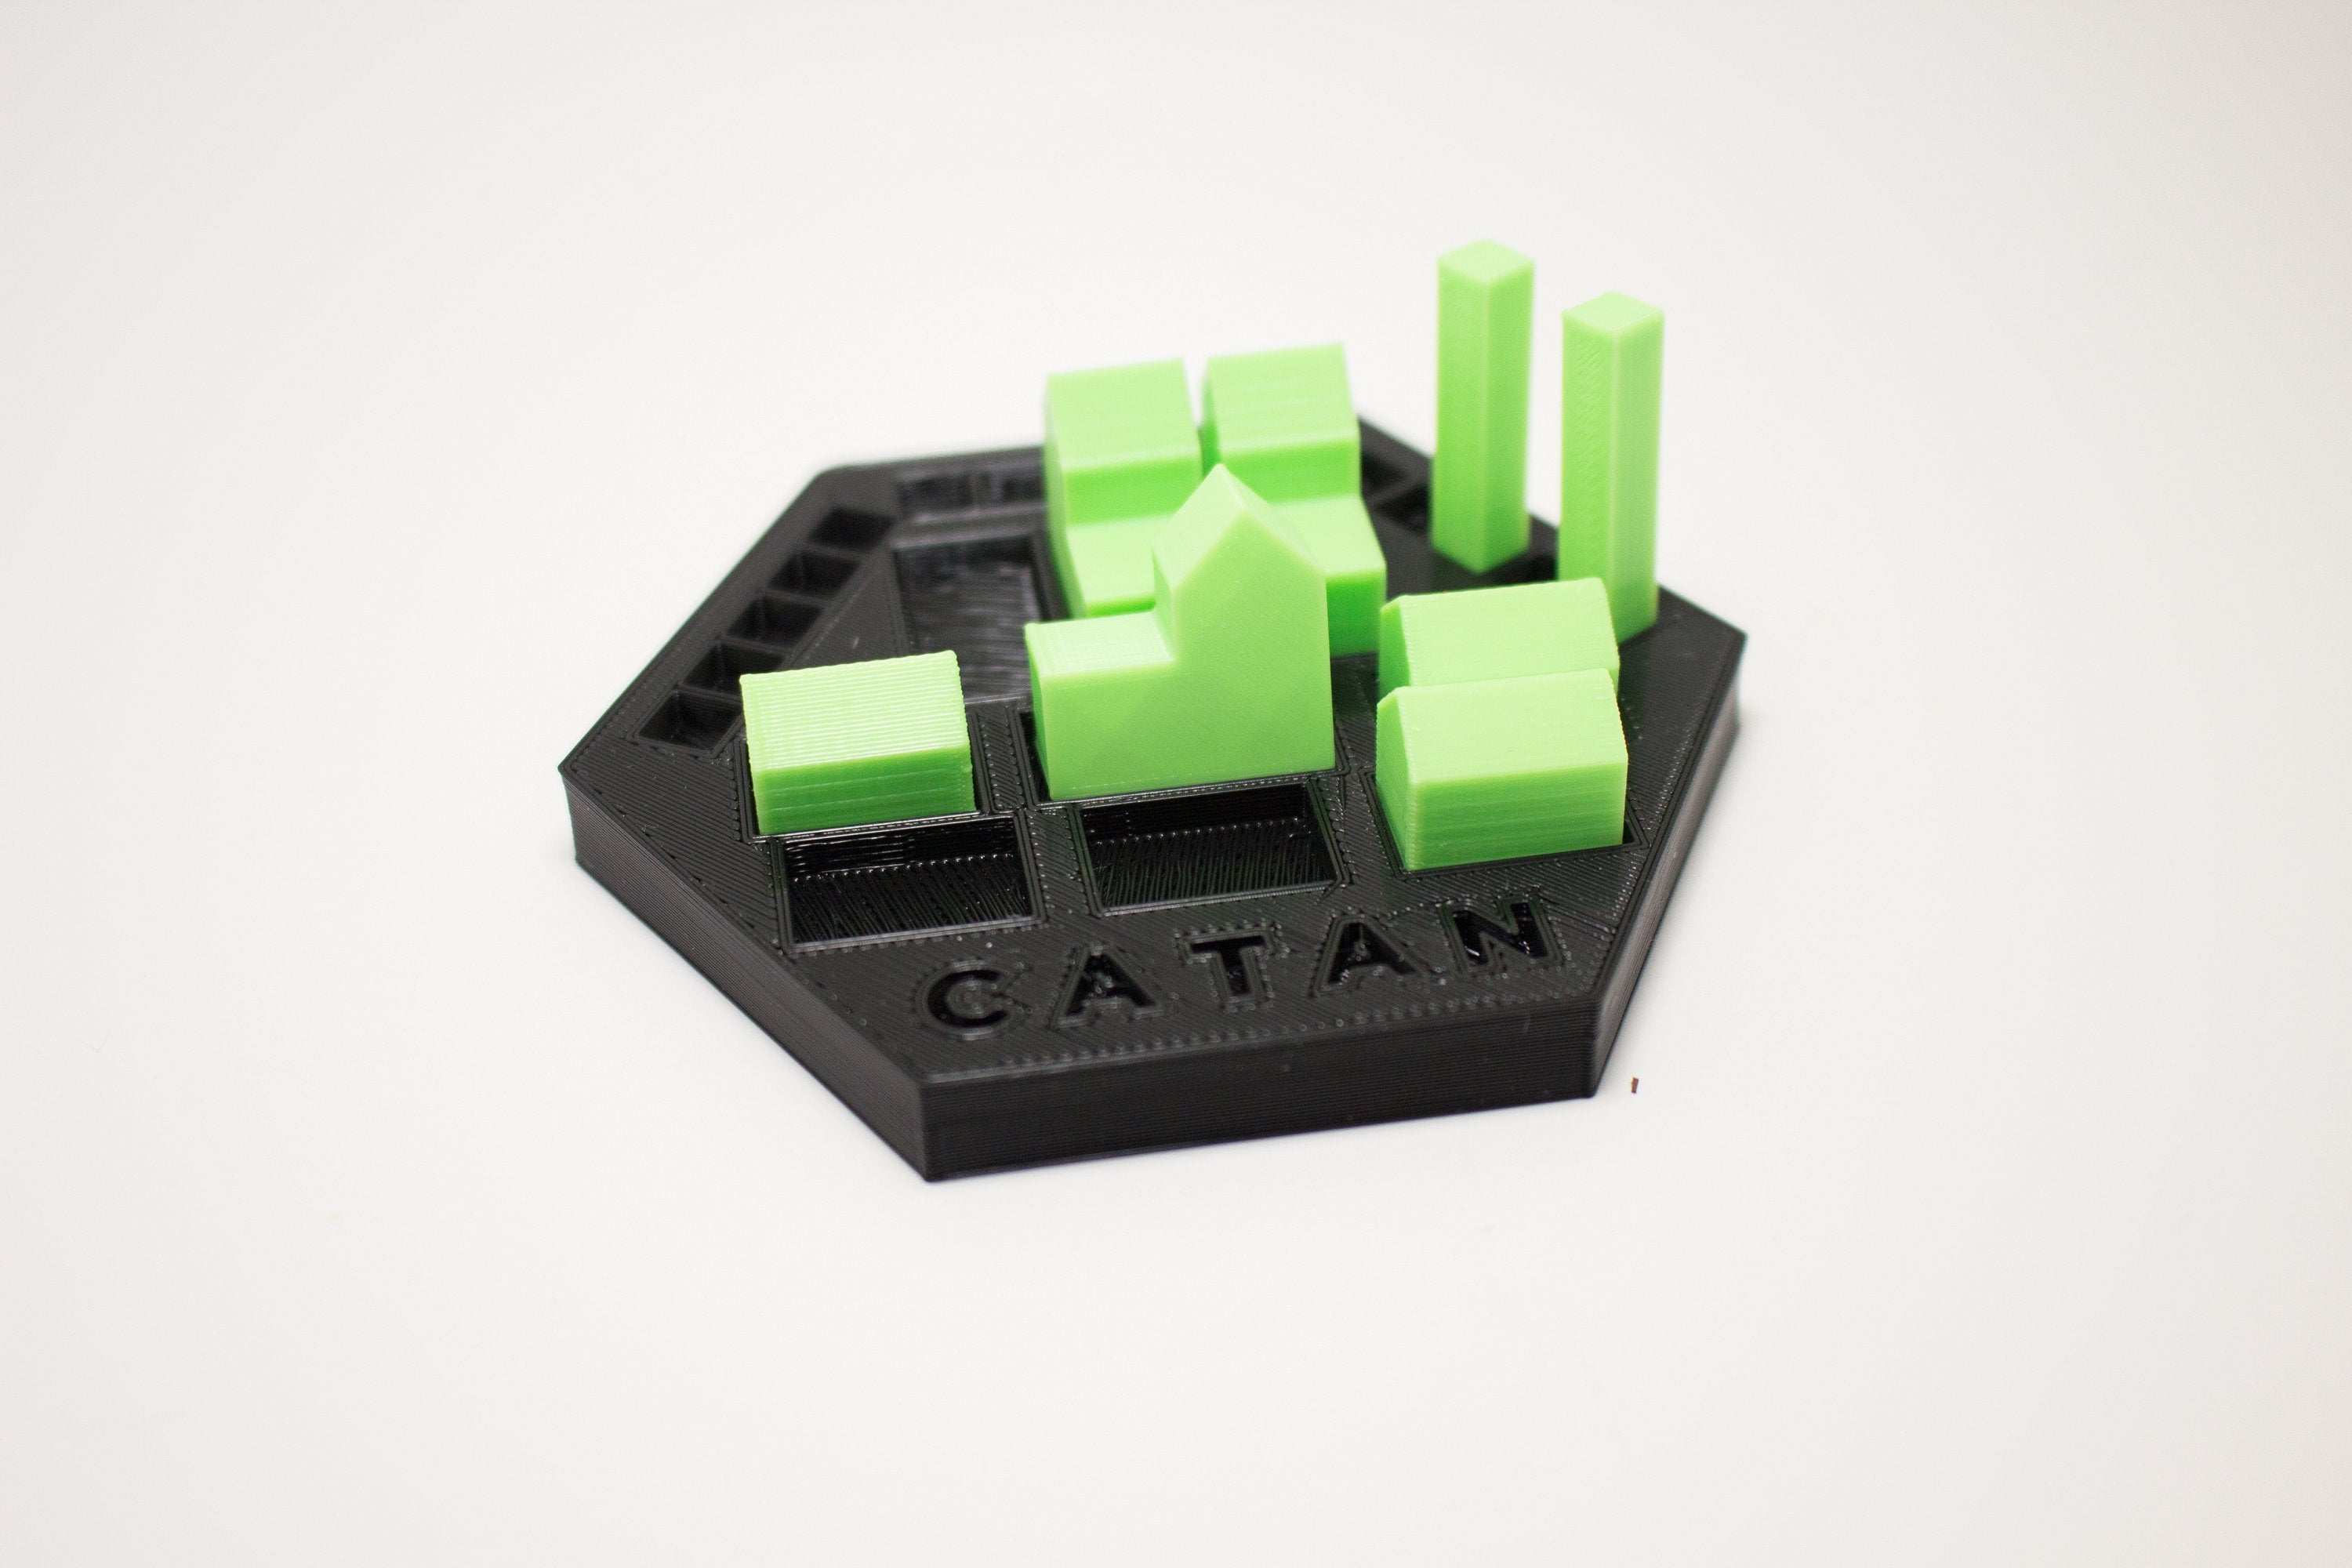 picture about Settlers of Catan Printable named Settlers of Catan Holder Organizer 3D Print